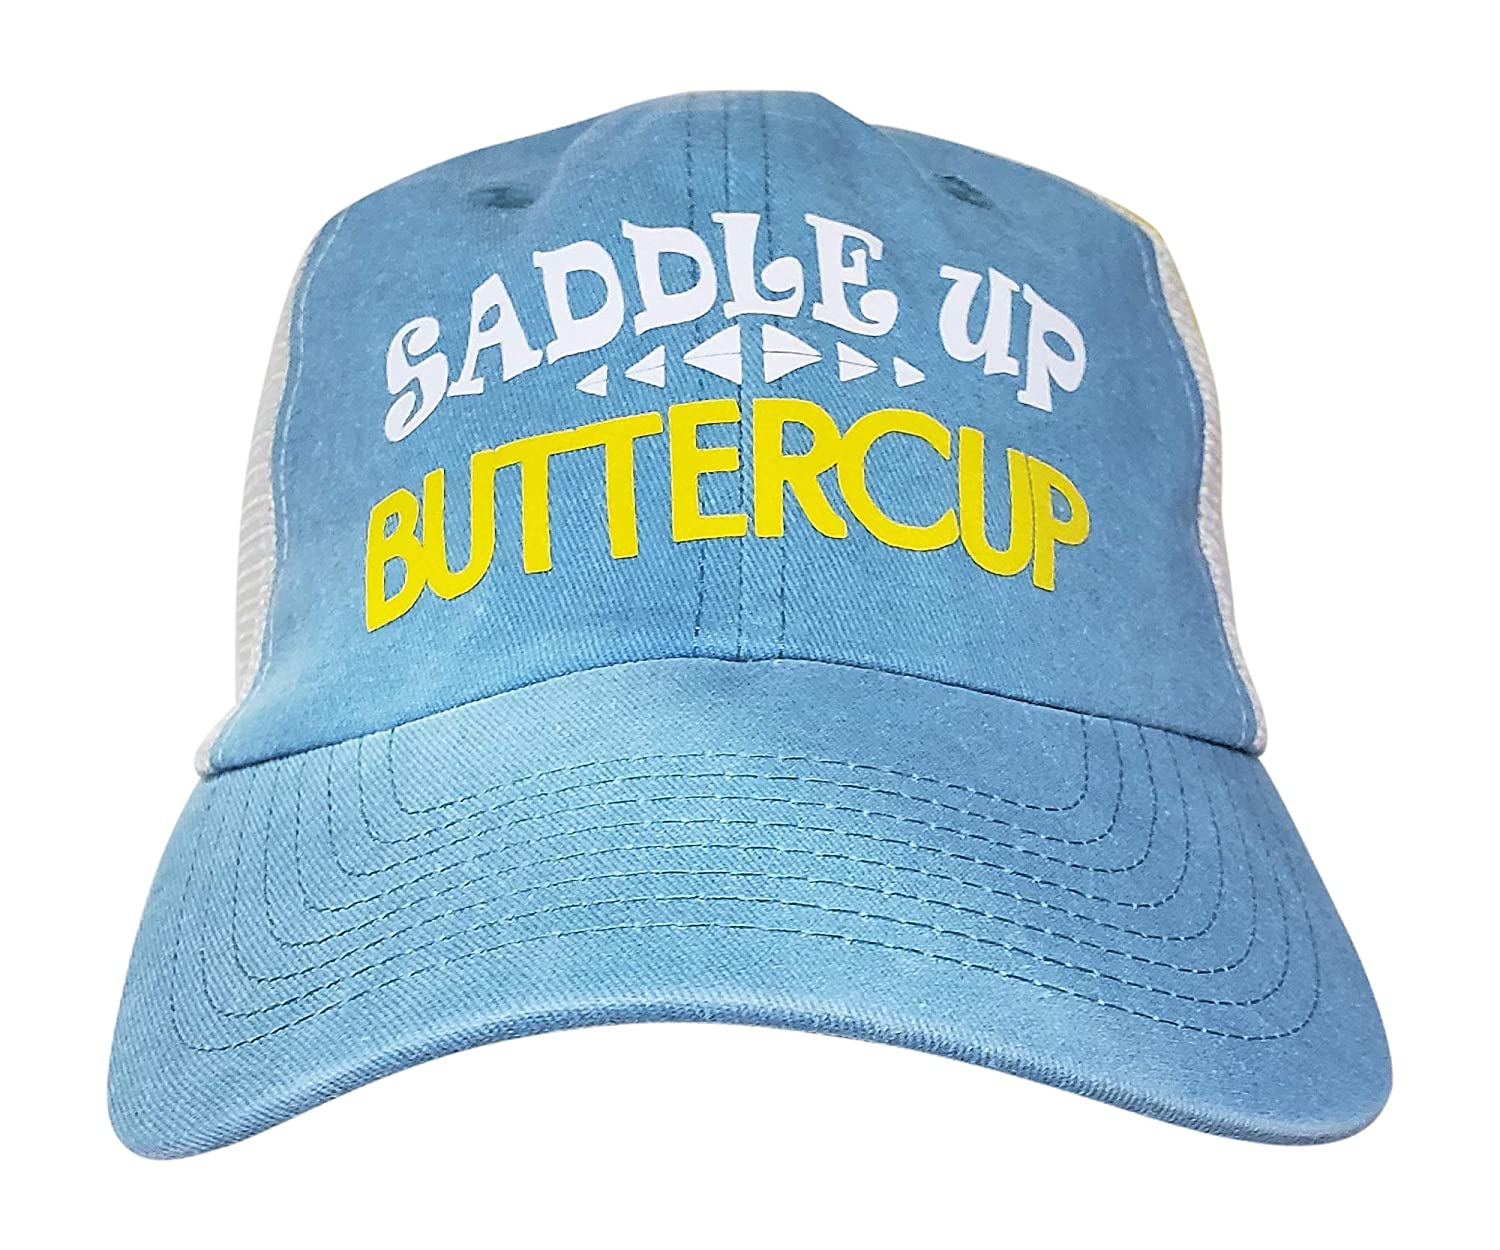 b885c260 Amazon.com: Muddy Carrots Pigment Dyed Trucker Hat Cotton Horse Hat (Saddle  Up Buttercup) Snapback with Mesh Back Aqua: Clothing